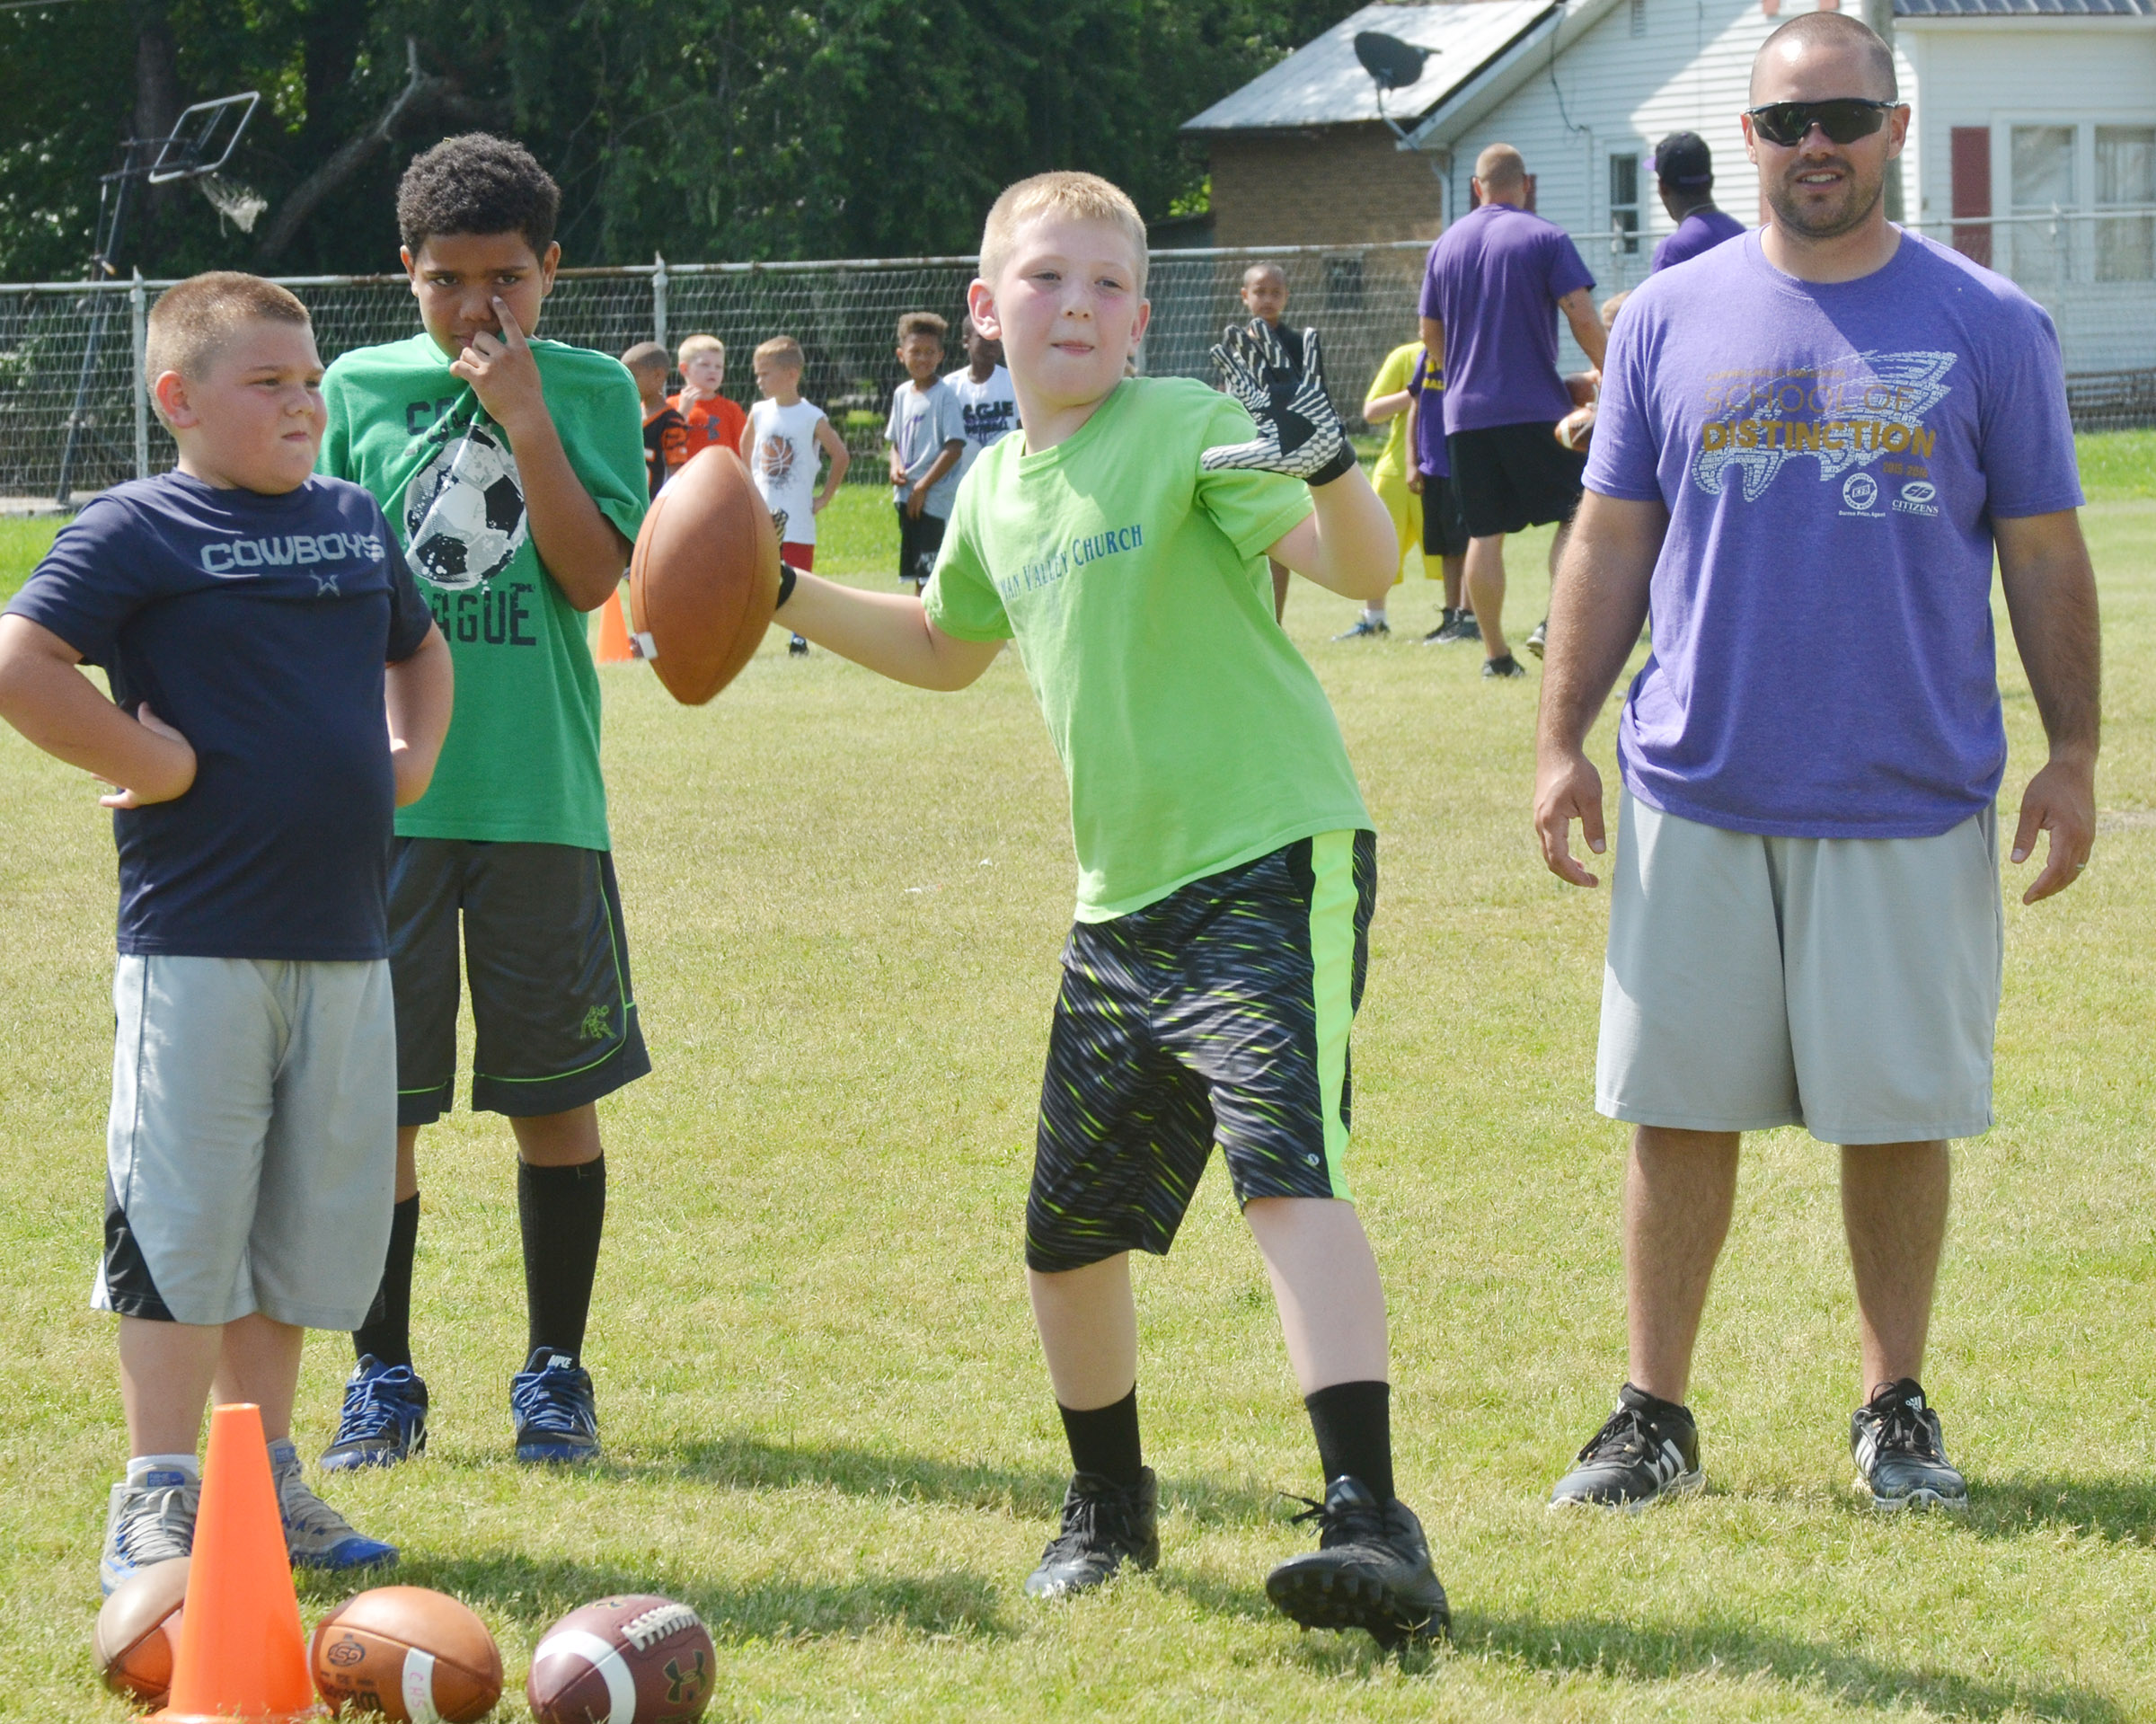 Kaleb Miller throws the ball, with help from assistant coach Blake Milby.